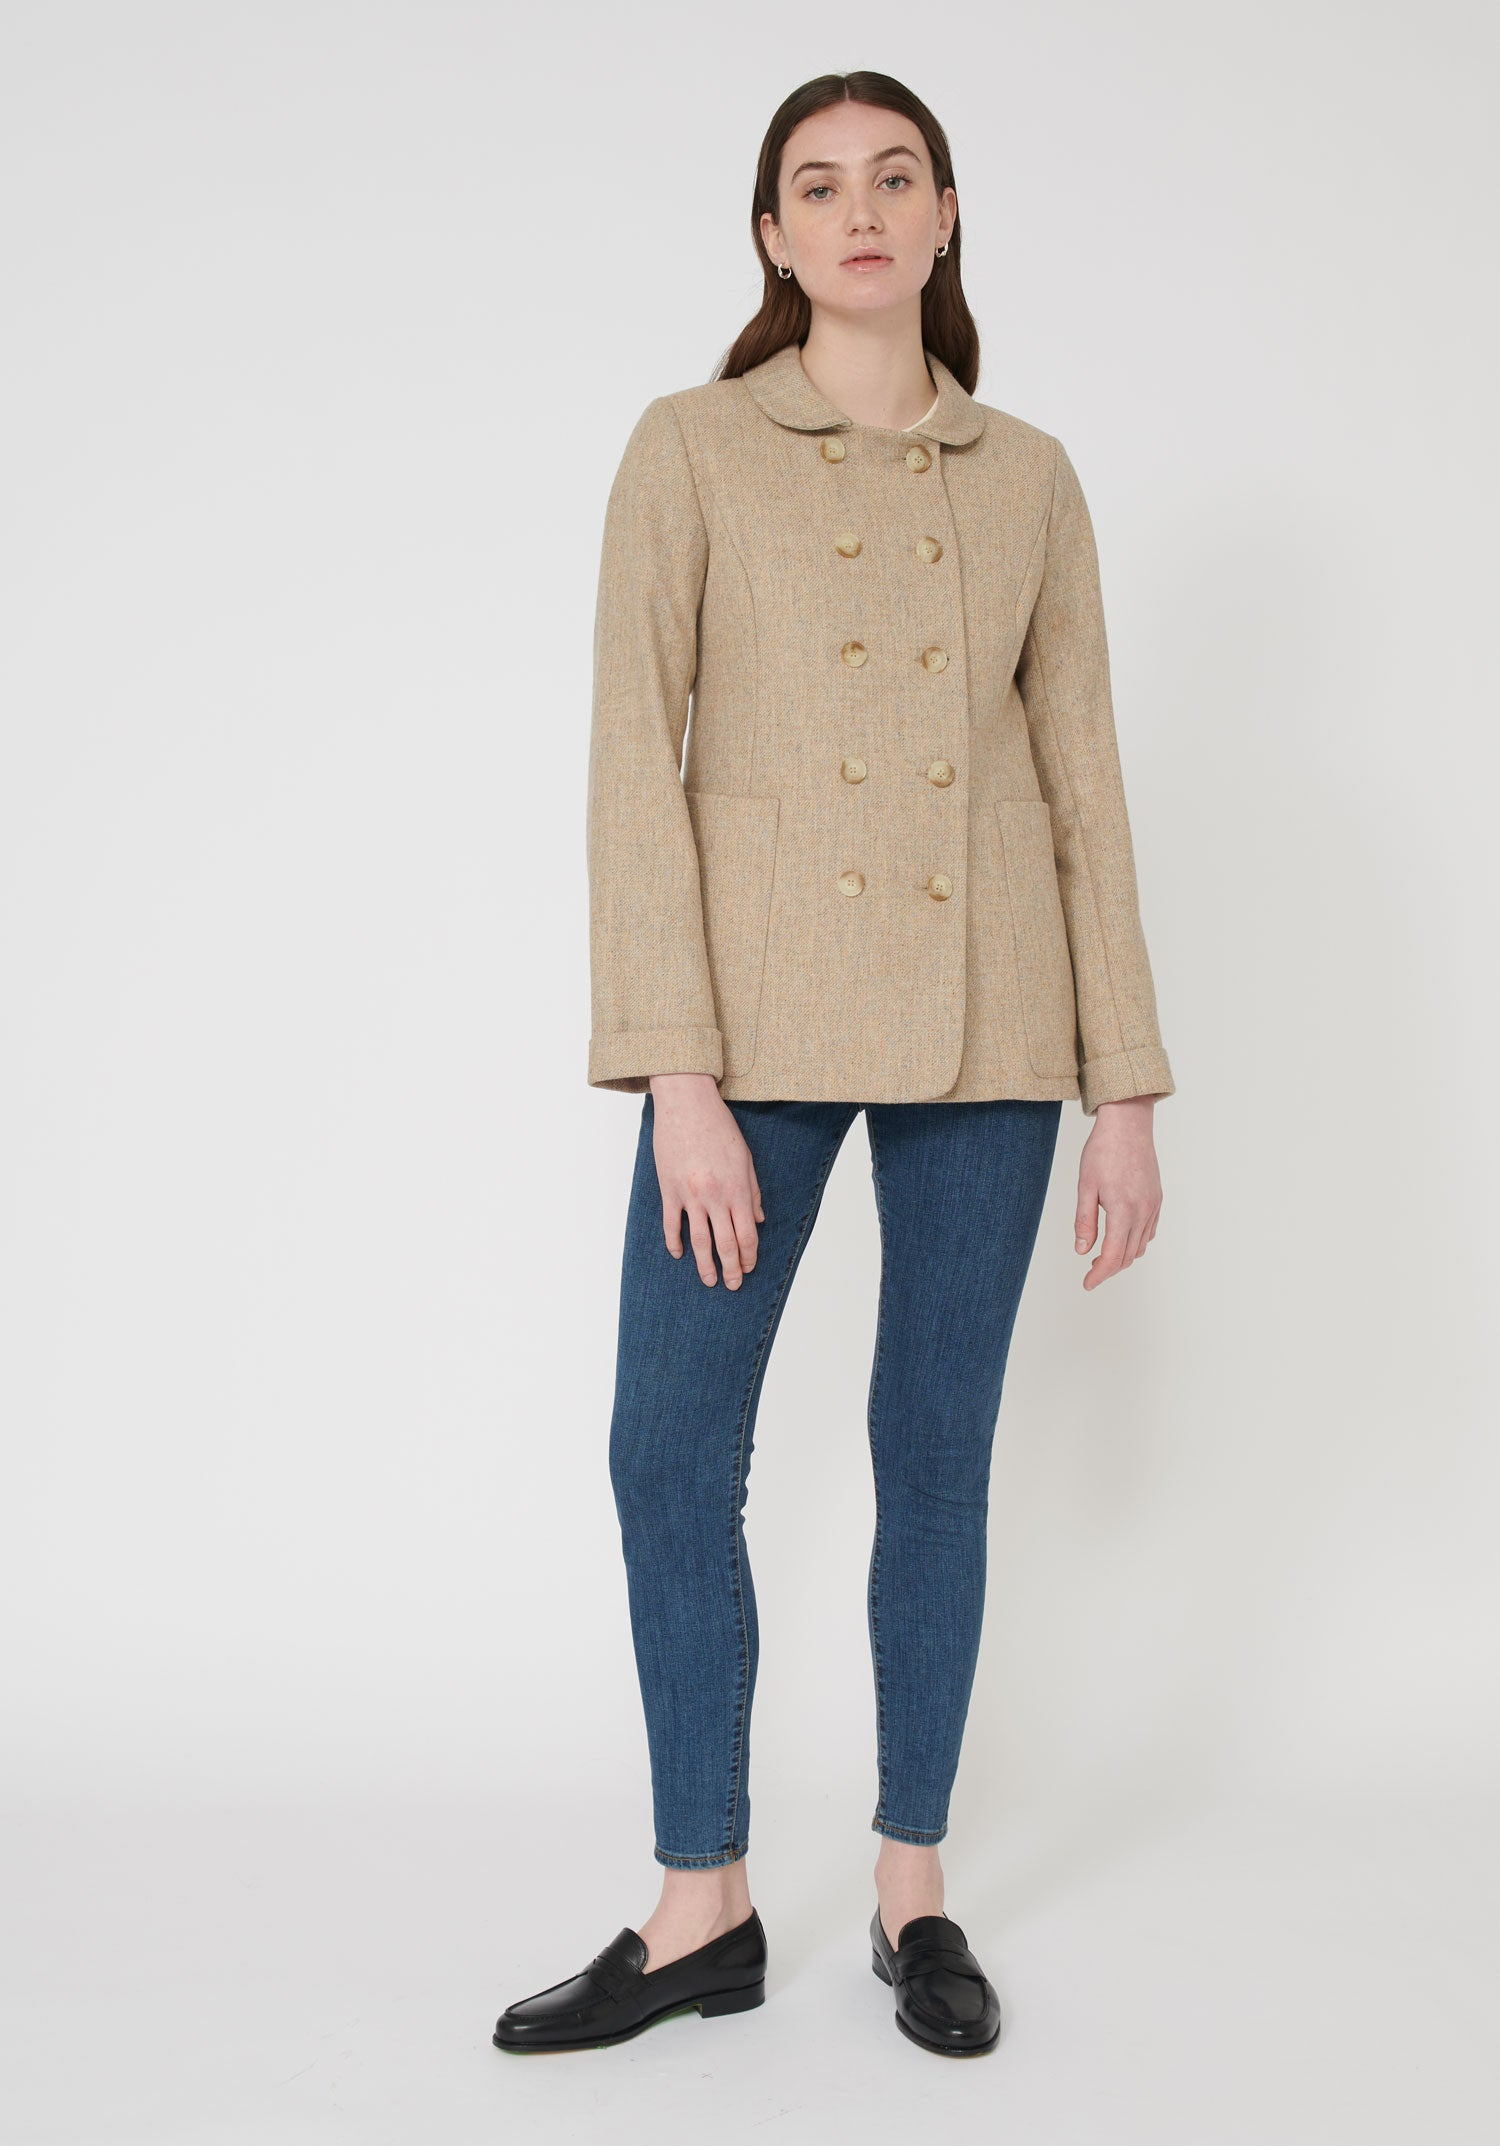 A casual, slightly oversized jacket featuring a rounded collar, double-breasted buttons, and large pockets, the Artist jacket pairs perfectly with jeans.  Made in our London workshop from a lightweight wool, the perfect layering piece for those cooler Spring days. Artist Jacket | Pebble Peach Wool front view